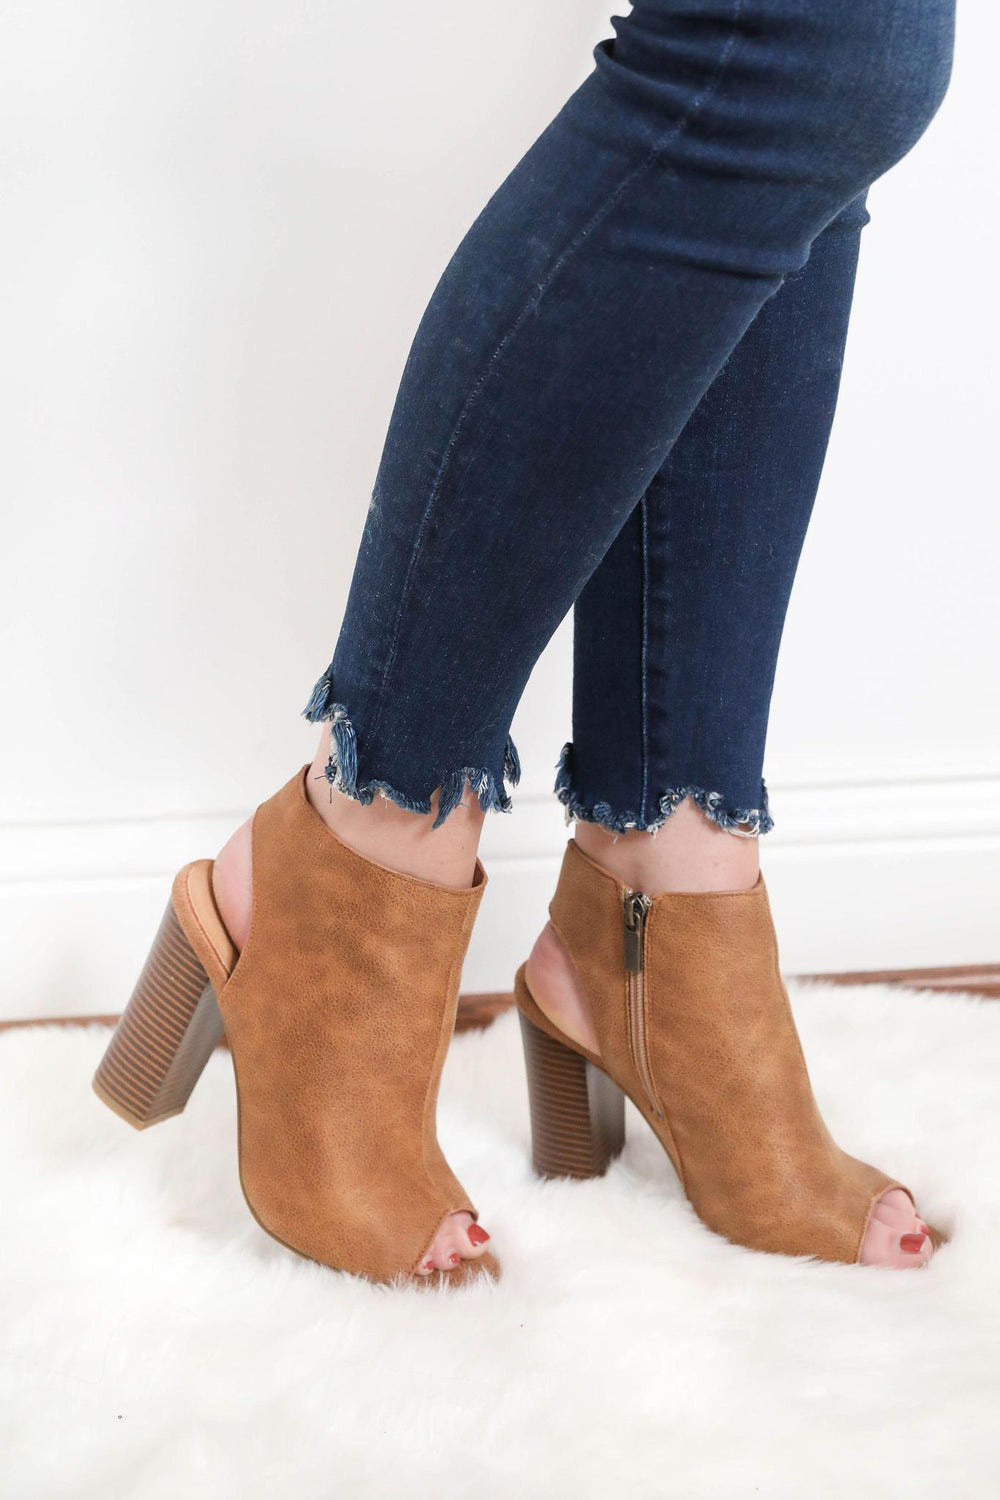 Sneak Around Peep Toe Booties - Brown